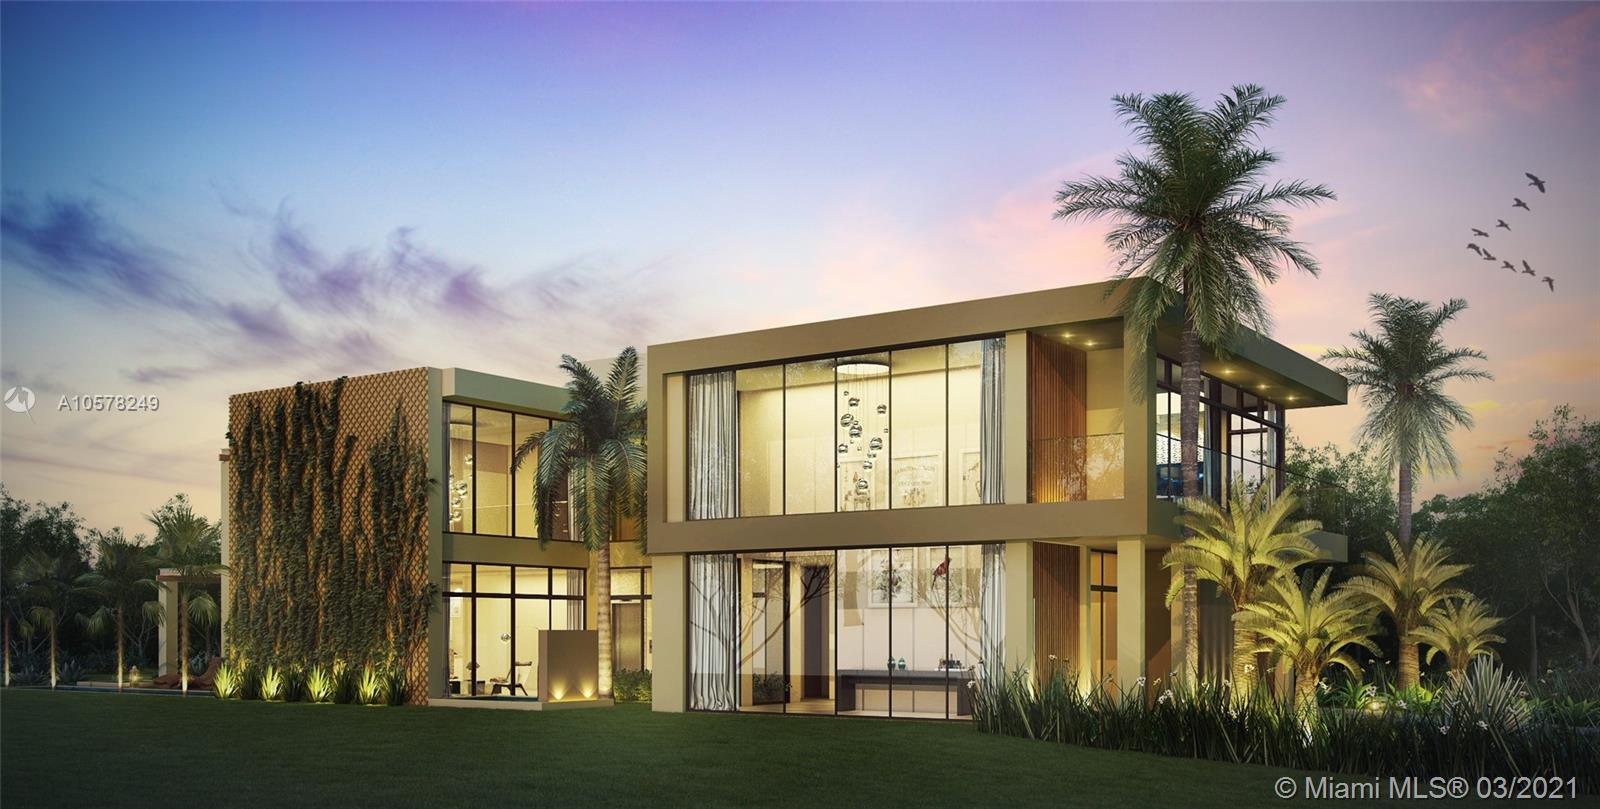 """BRAND NEW CONSTRUCTION Built to Suit *BRING ALL OFFERS, """"BEST HOUSE AVAILABLE in front of Simpson Park"""" Great opportunity for an End-user/Owner occupant looking to Customize their own Castle/Home. Ultra-chic, hottest & most desirable place in Miami's financial district… walking distance to BRICKELL CITY CENTRE, HIGH-END LUXURY brands & shopping, amazing restaurants, Movie Theater, Bistros, preservation-parks,  supermarkets, only 2 blocks from the Bay, w/ easy access to highways & main roads.  Includes High End Customizable Architectural Construction Plans to build a MODERN DESIGN customized 2 story 5,500+ SqFt, Pool home w/ 6 bed/6.5 bath (6 Suites +Guest-Powder-room), Summer kitchen, Elevator, Interior Garden, Garage, etc.*OWNER FINANCING & WILL CONSIDER TAKING OTHER PROPERTY AS PAYMENT*"""